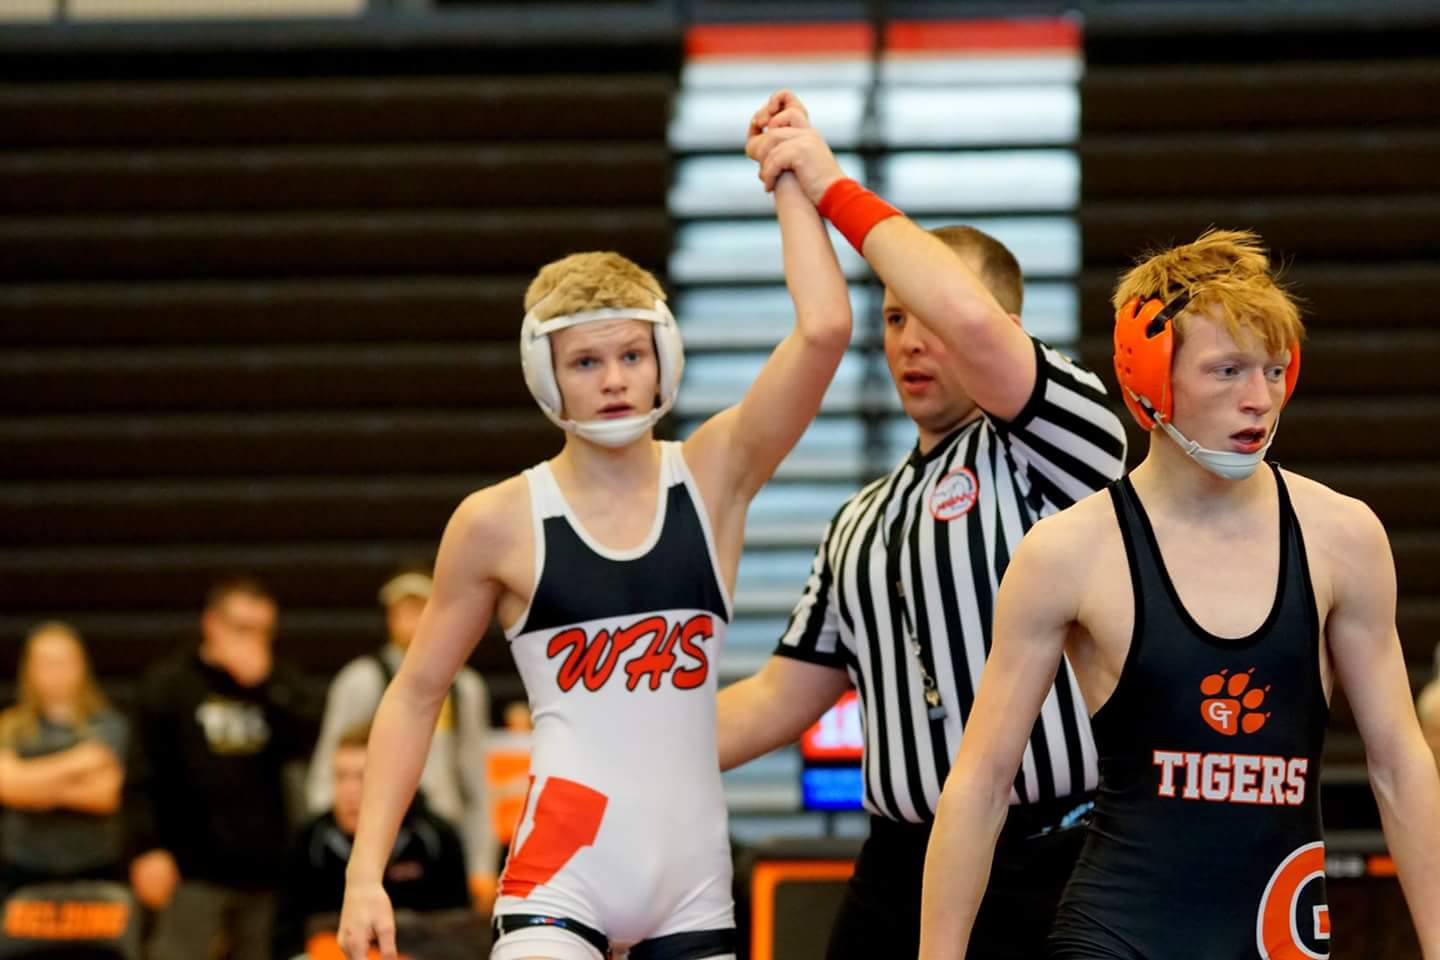 Whitehall wrestling team will make another push for a state title this weekend